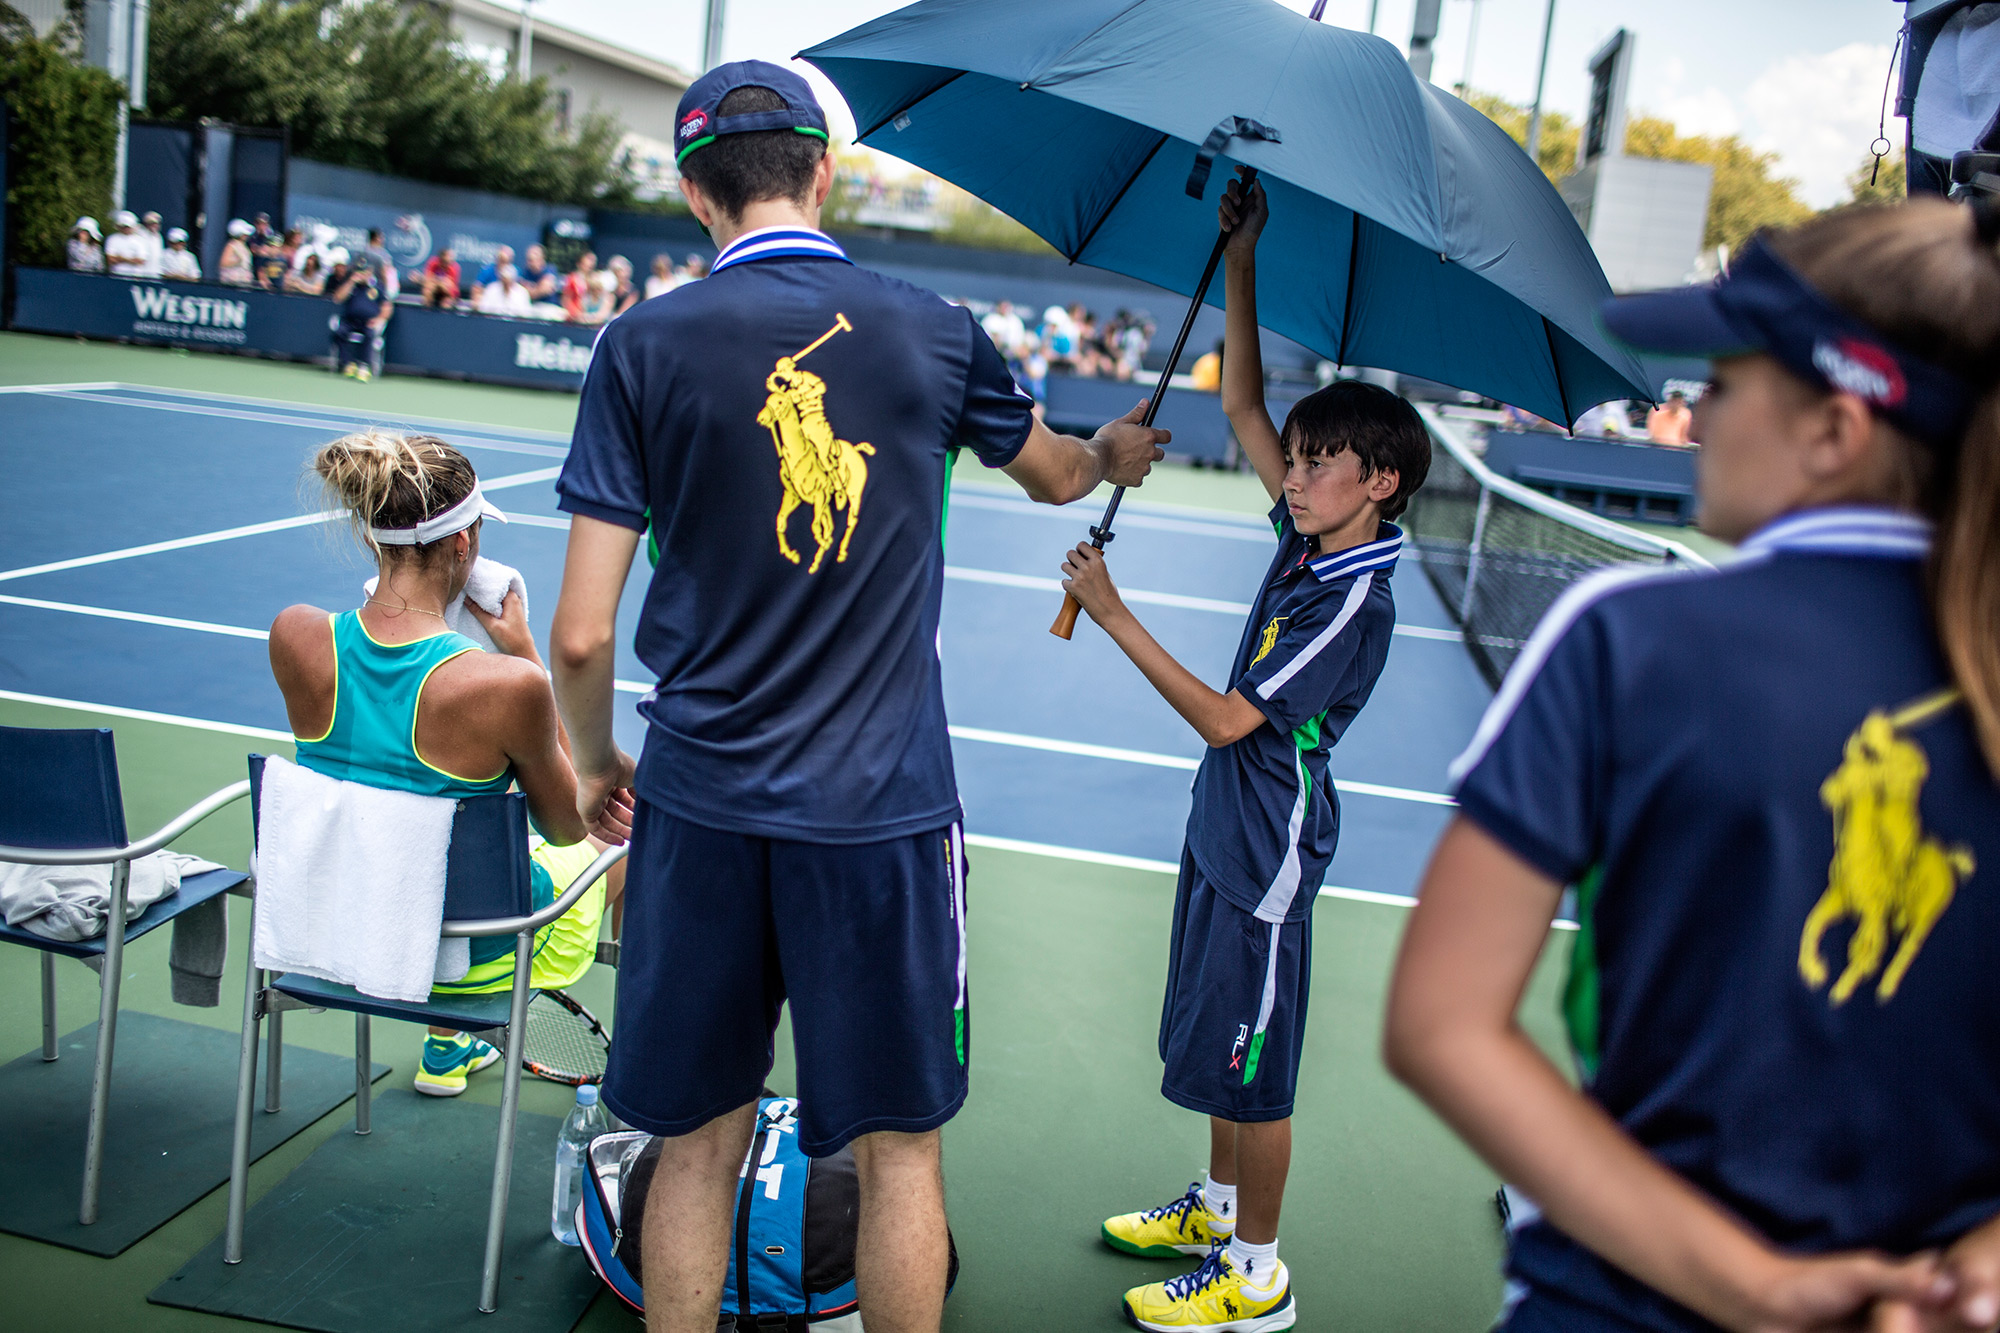 US Open ball persons have a variety of responsibilities -- retrieving stray balls, distributing water and towels and shading the players from the sun. For some of the younger and vertically challenged volunteers, that last task is harder than others.